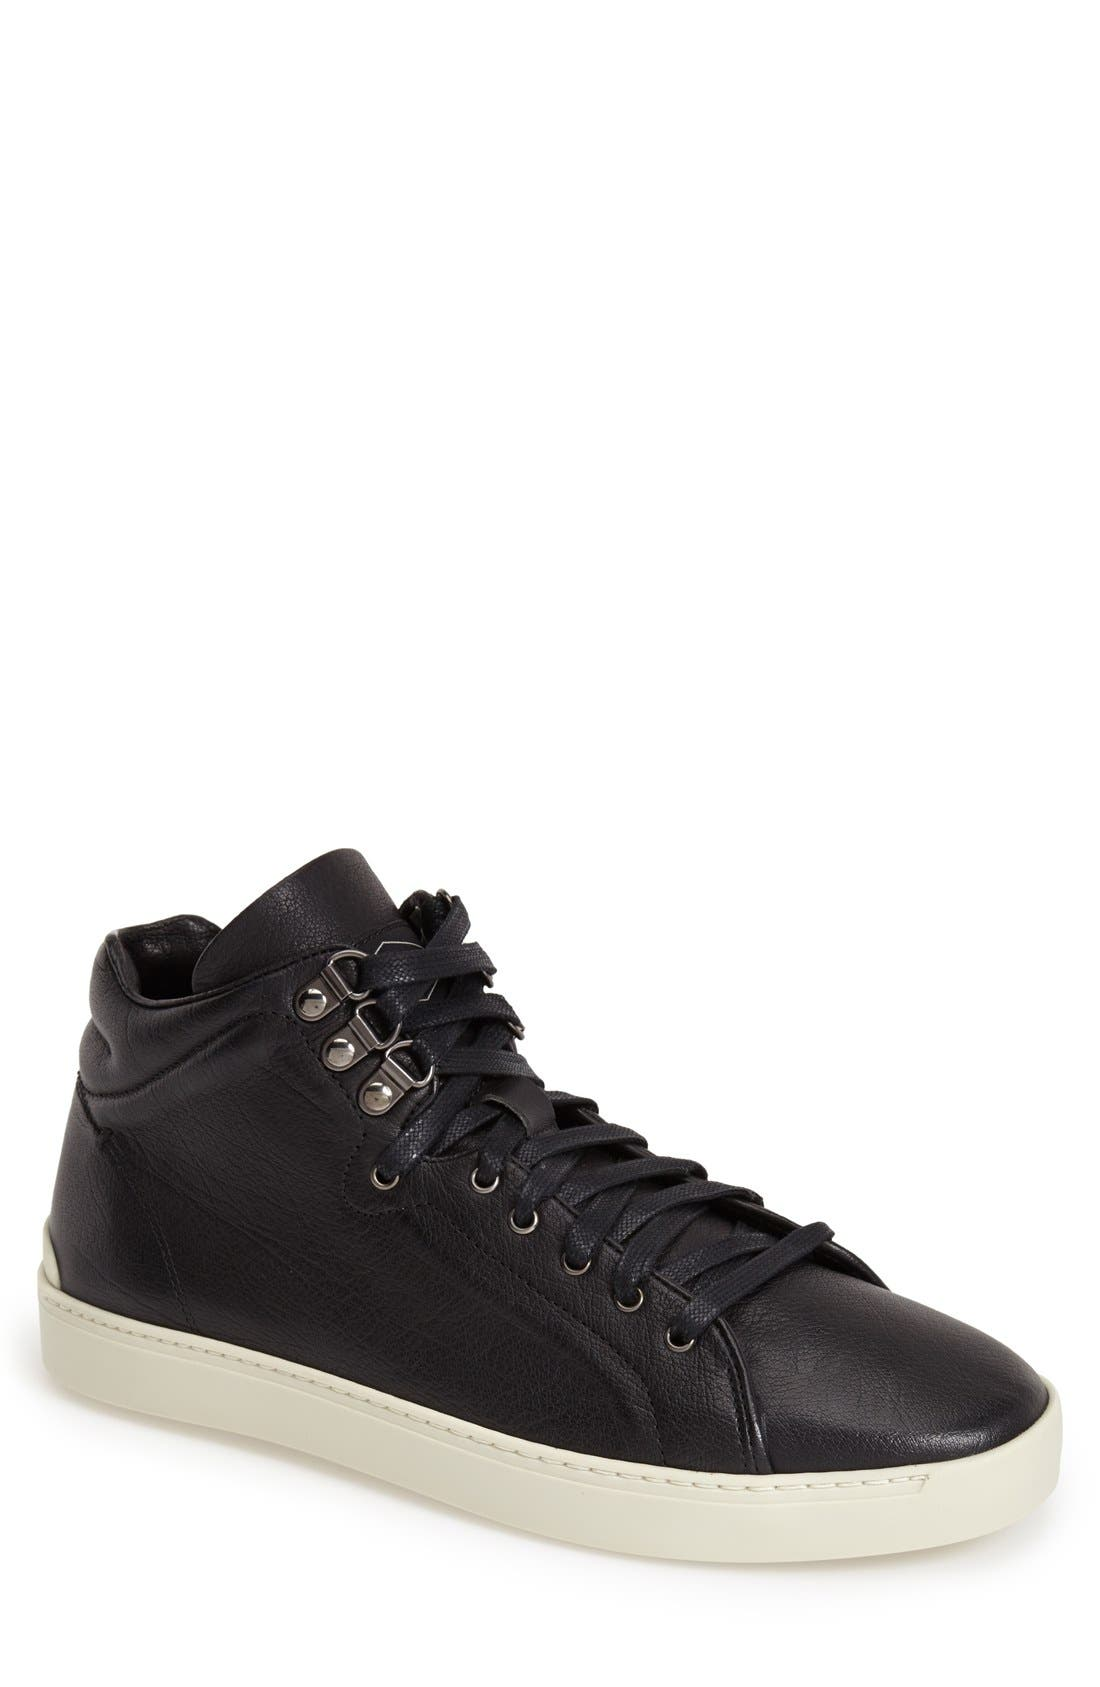 'Kent' Leather High Top Sneaker, Main, color, 001